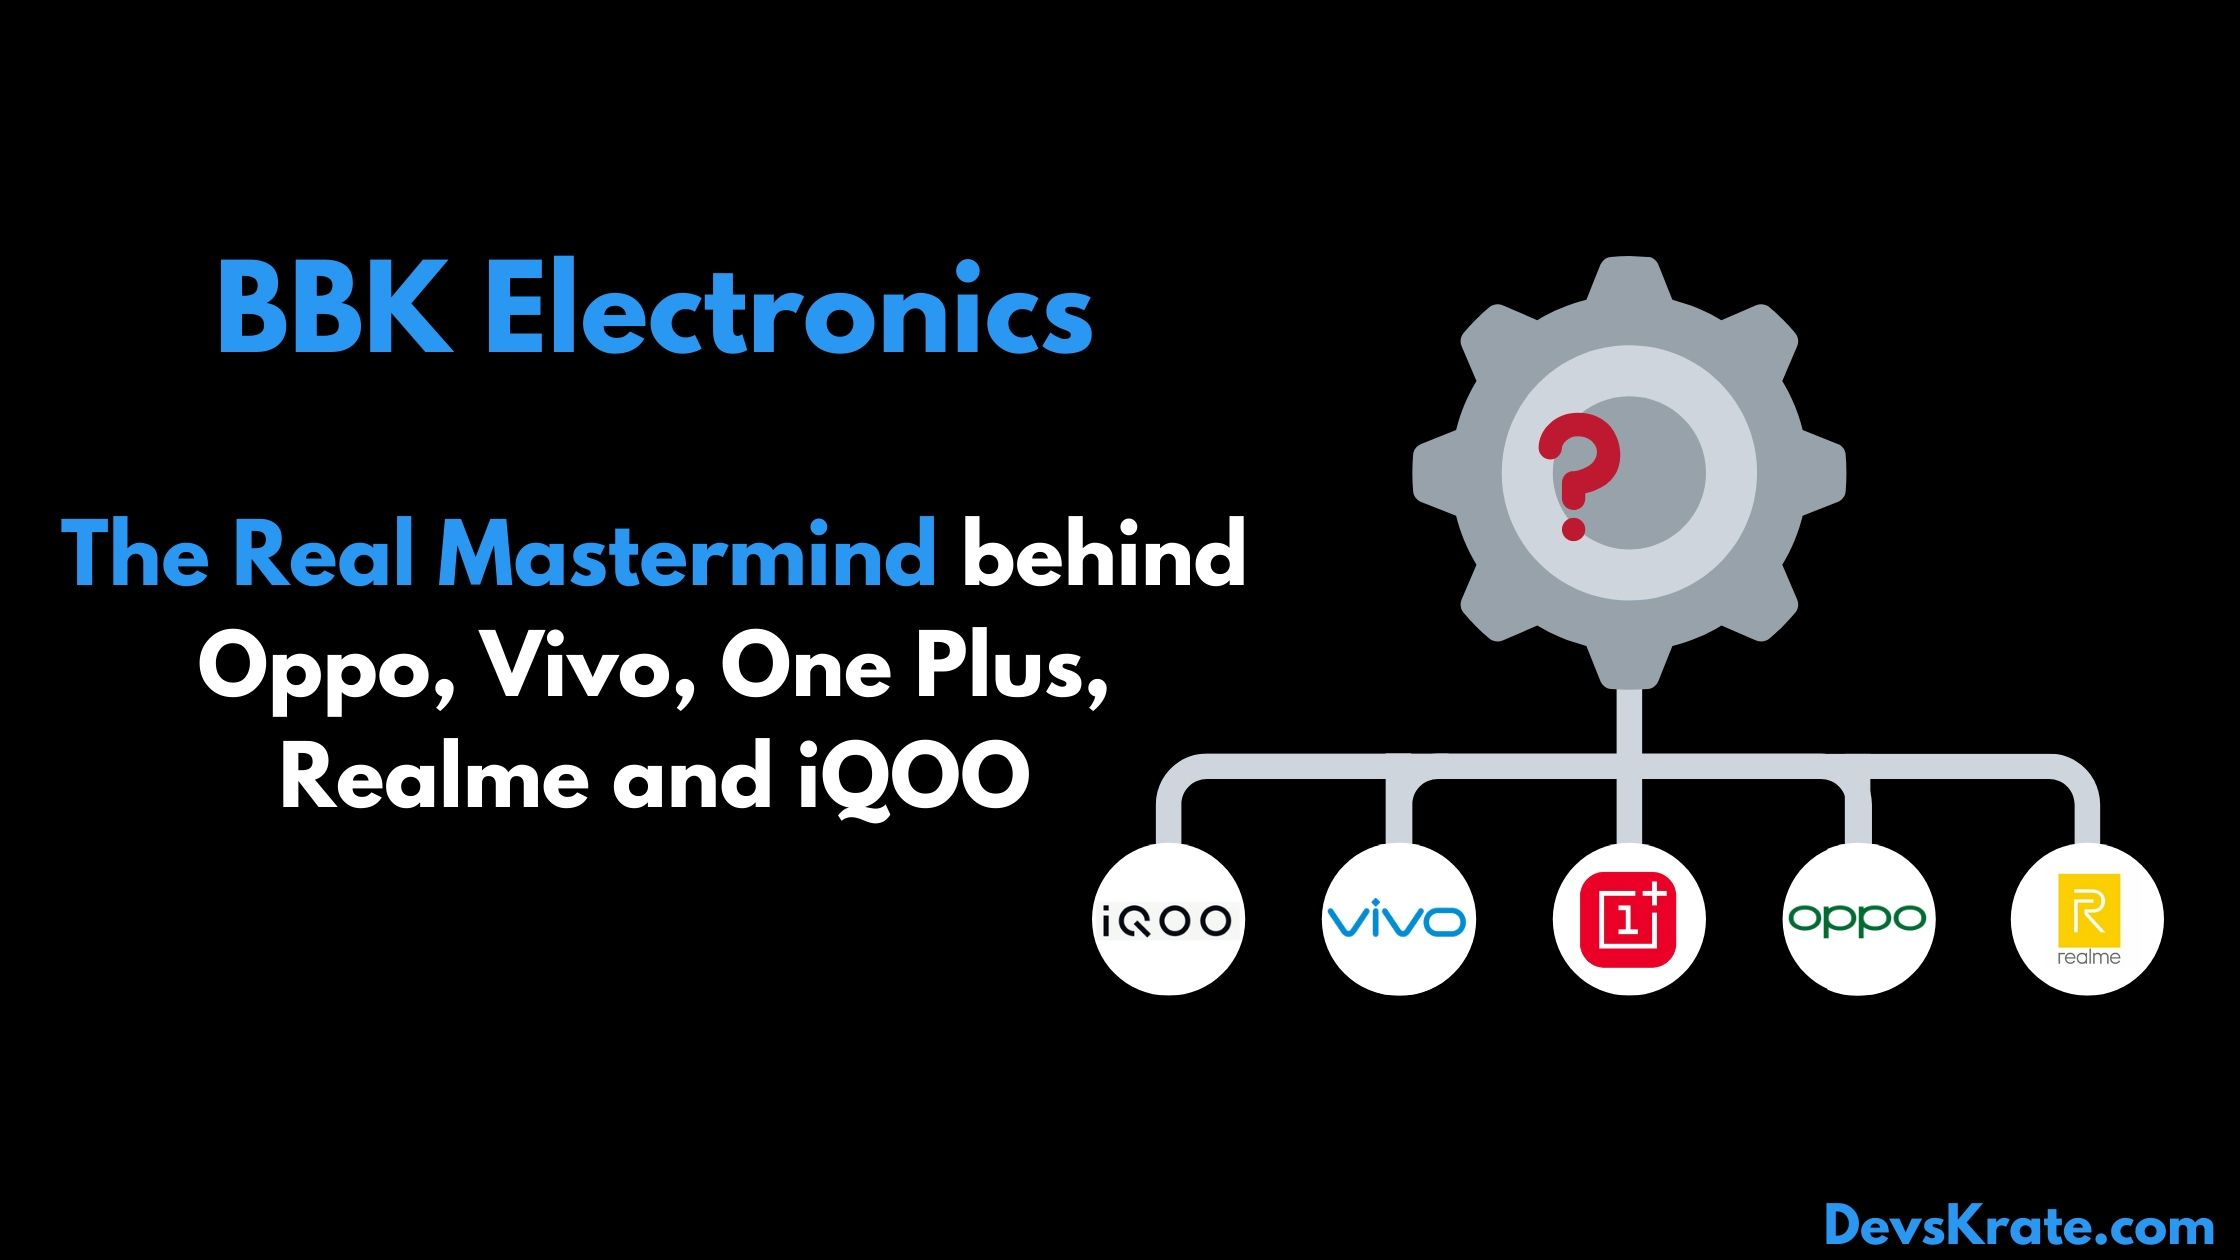 BBK Electronics - The real mastermind behind Oppo, Vivo, One Plus, Realme and iQOO